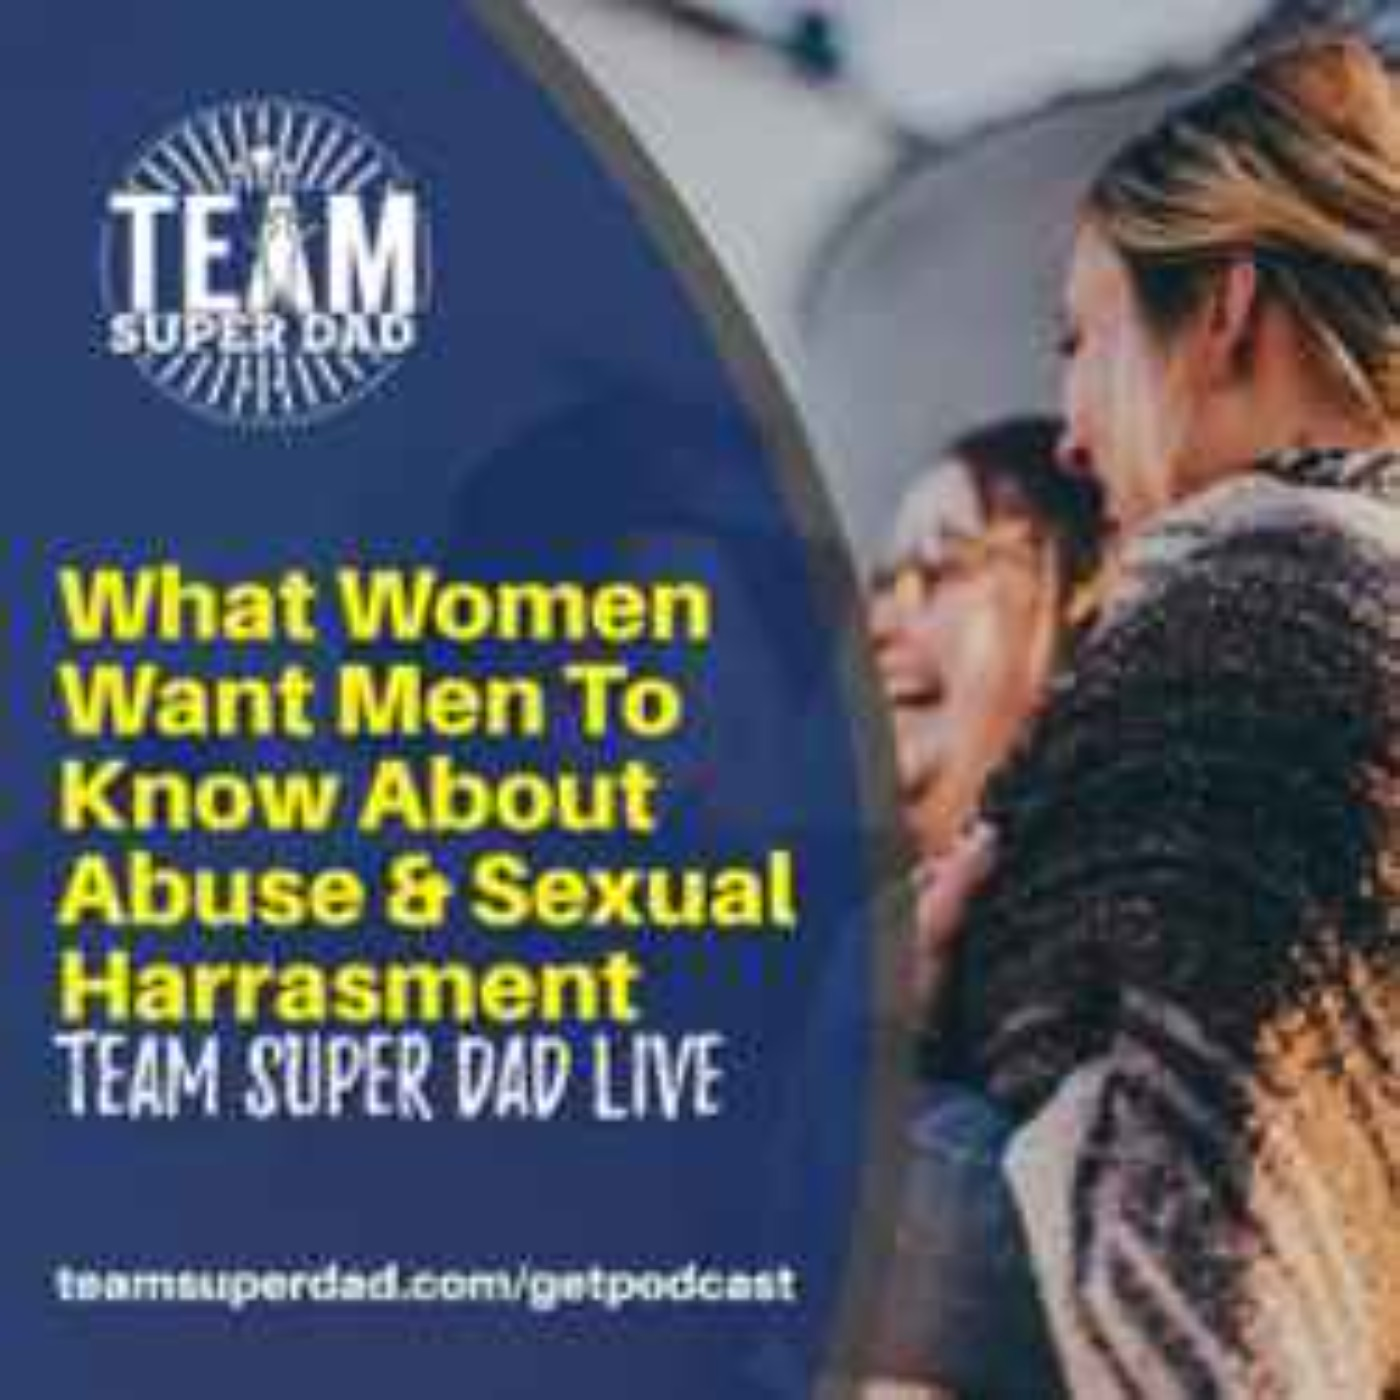 What Women Want Men To Know About Abuse And Sexual Harassment